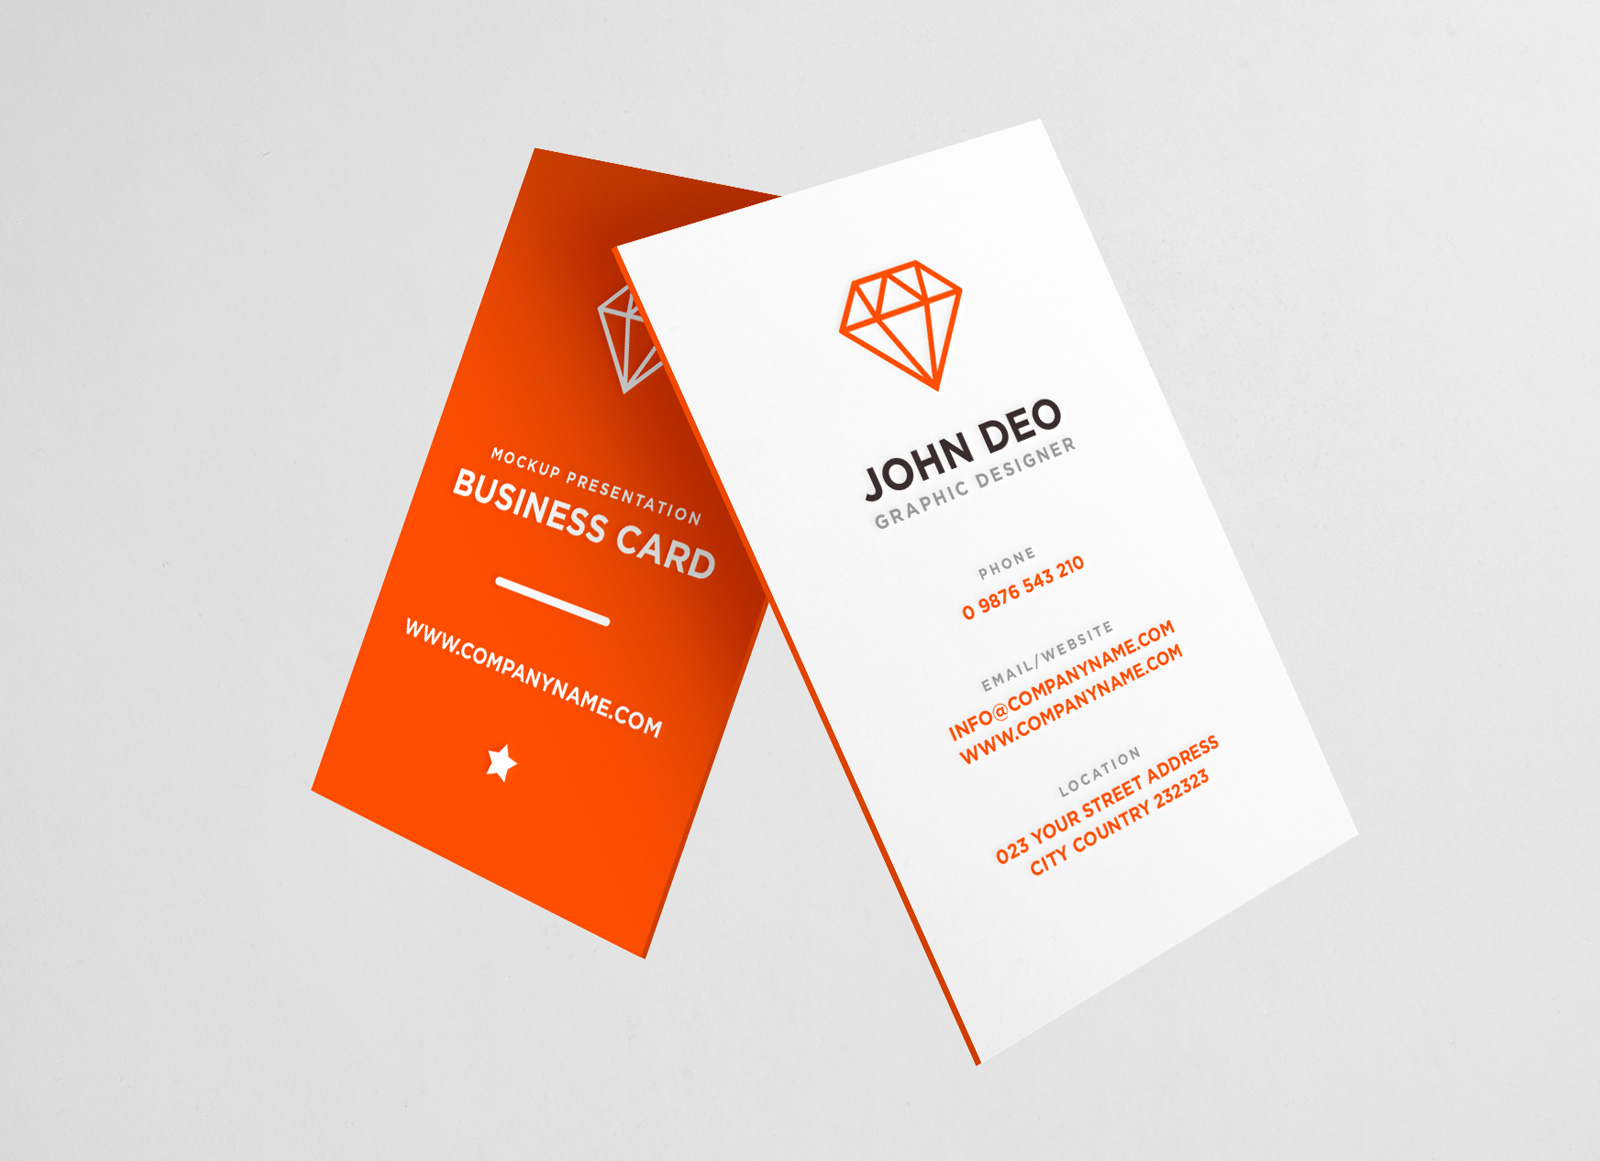 Free vertical business card mockup psd good mockups free vertical business card mockup psd reheart Choice Image